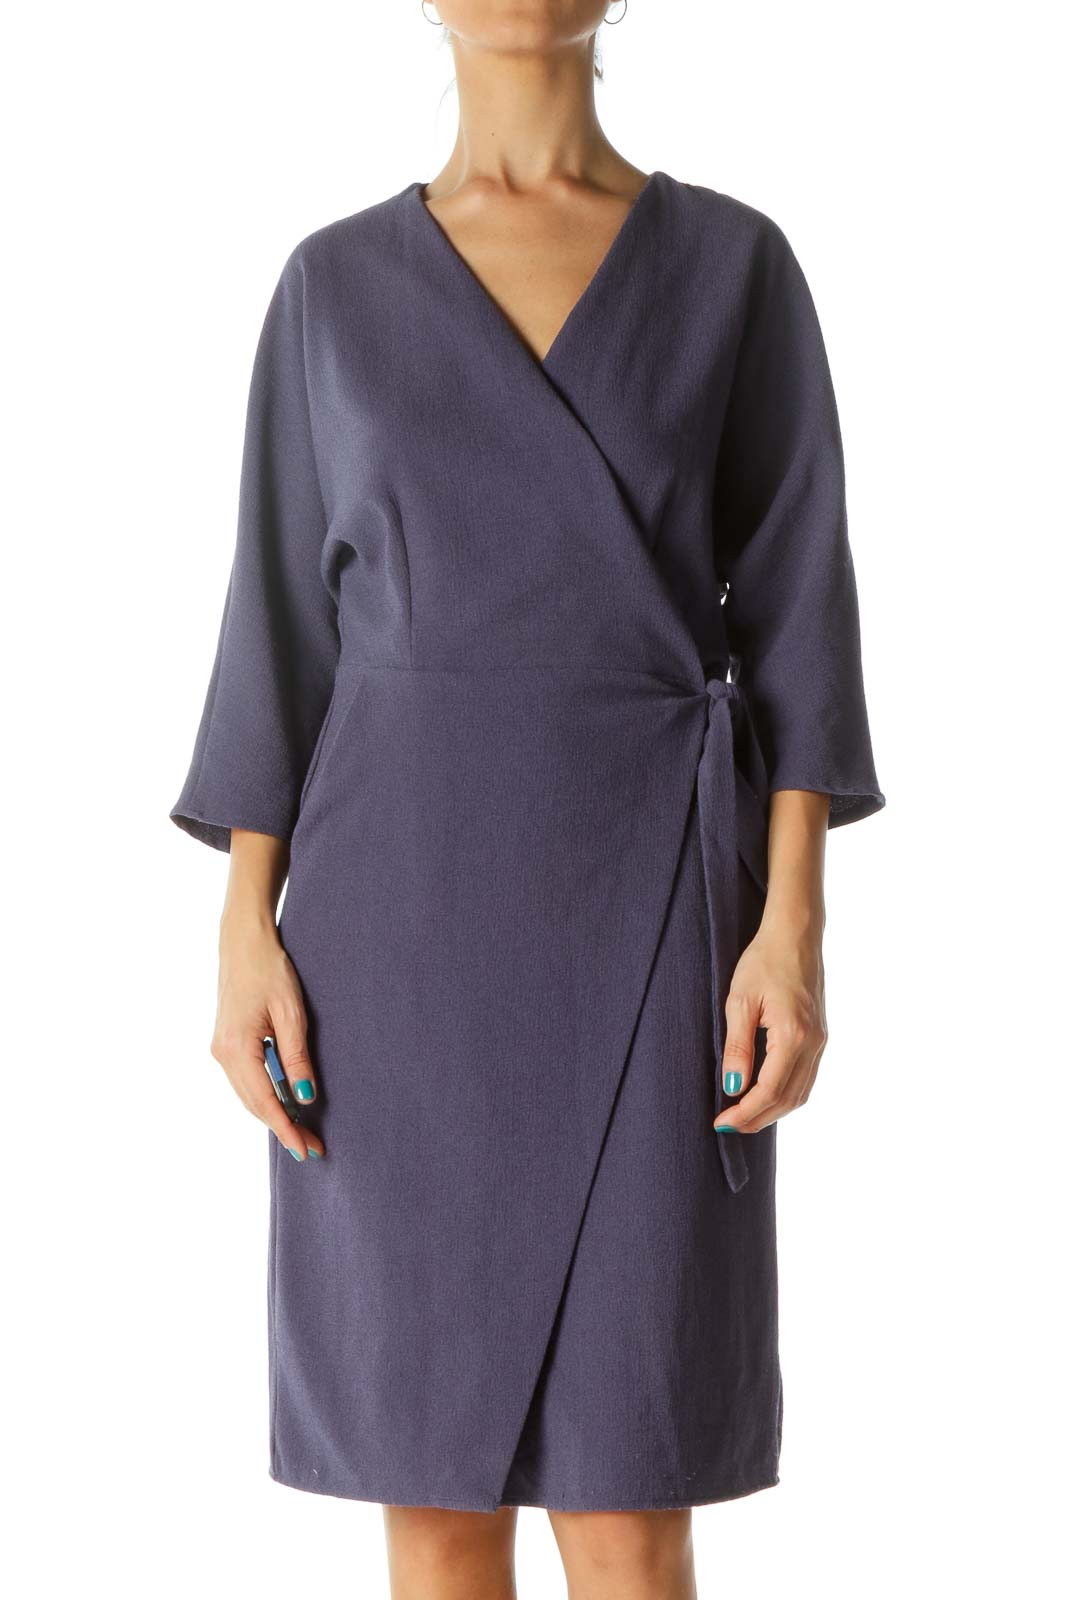 Blue Wrap Textured 3/4 Sleeve Dress Front